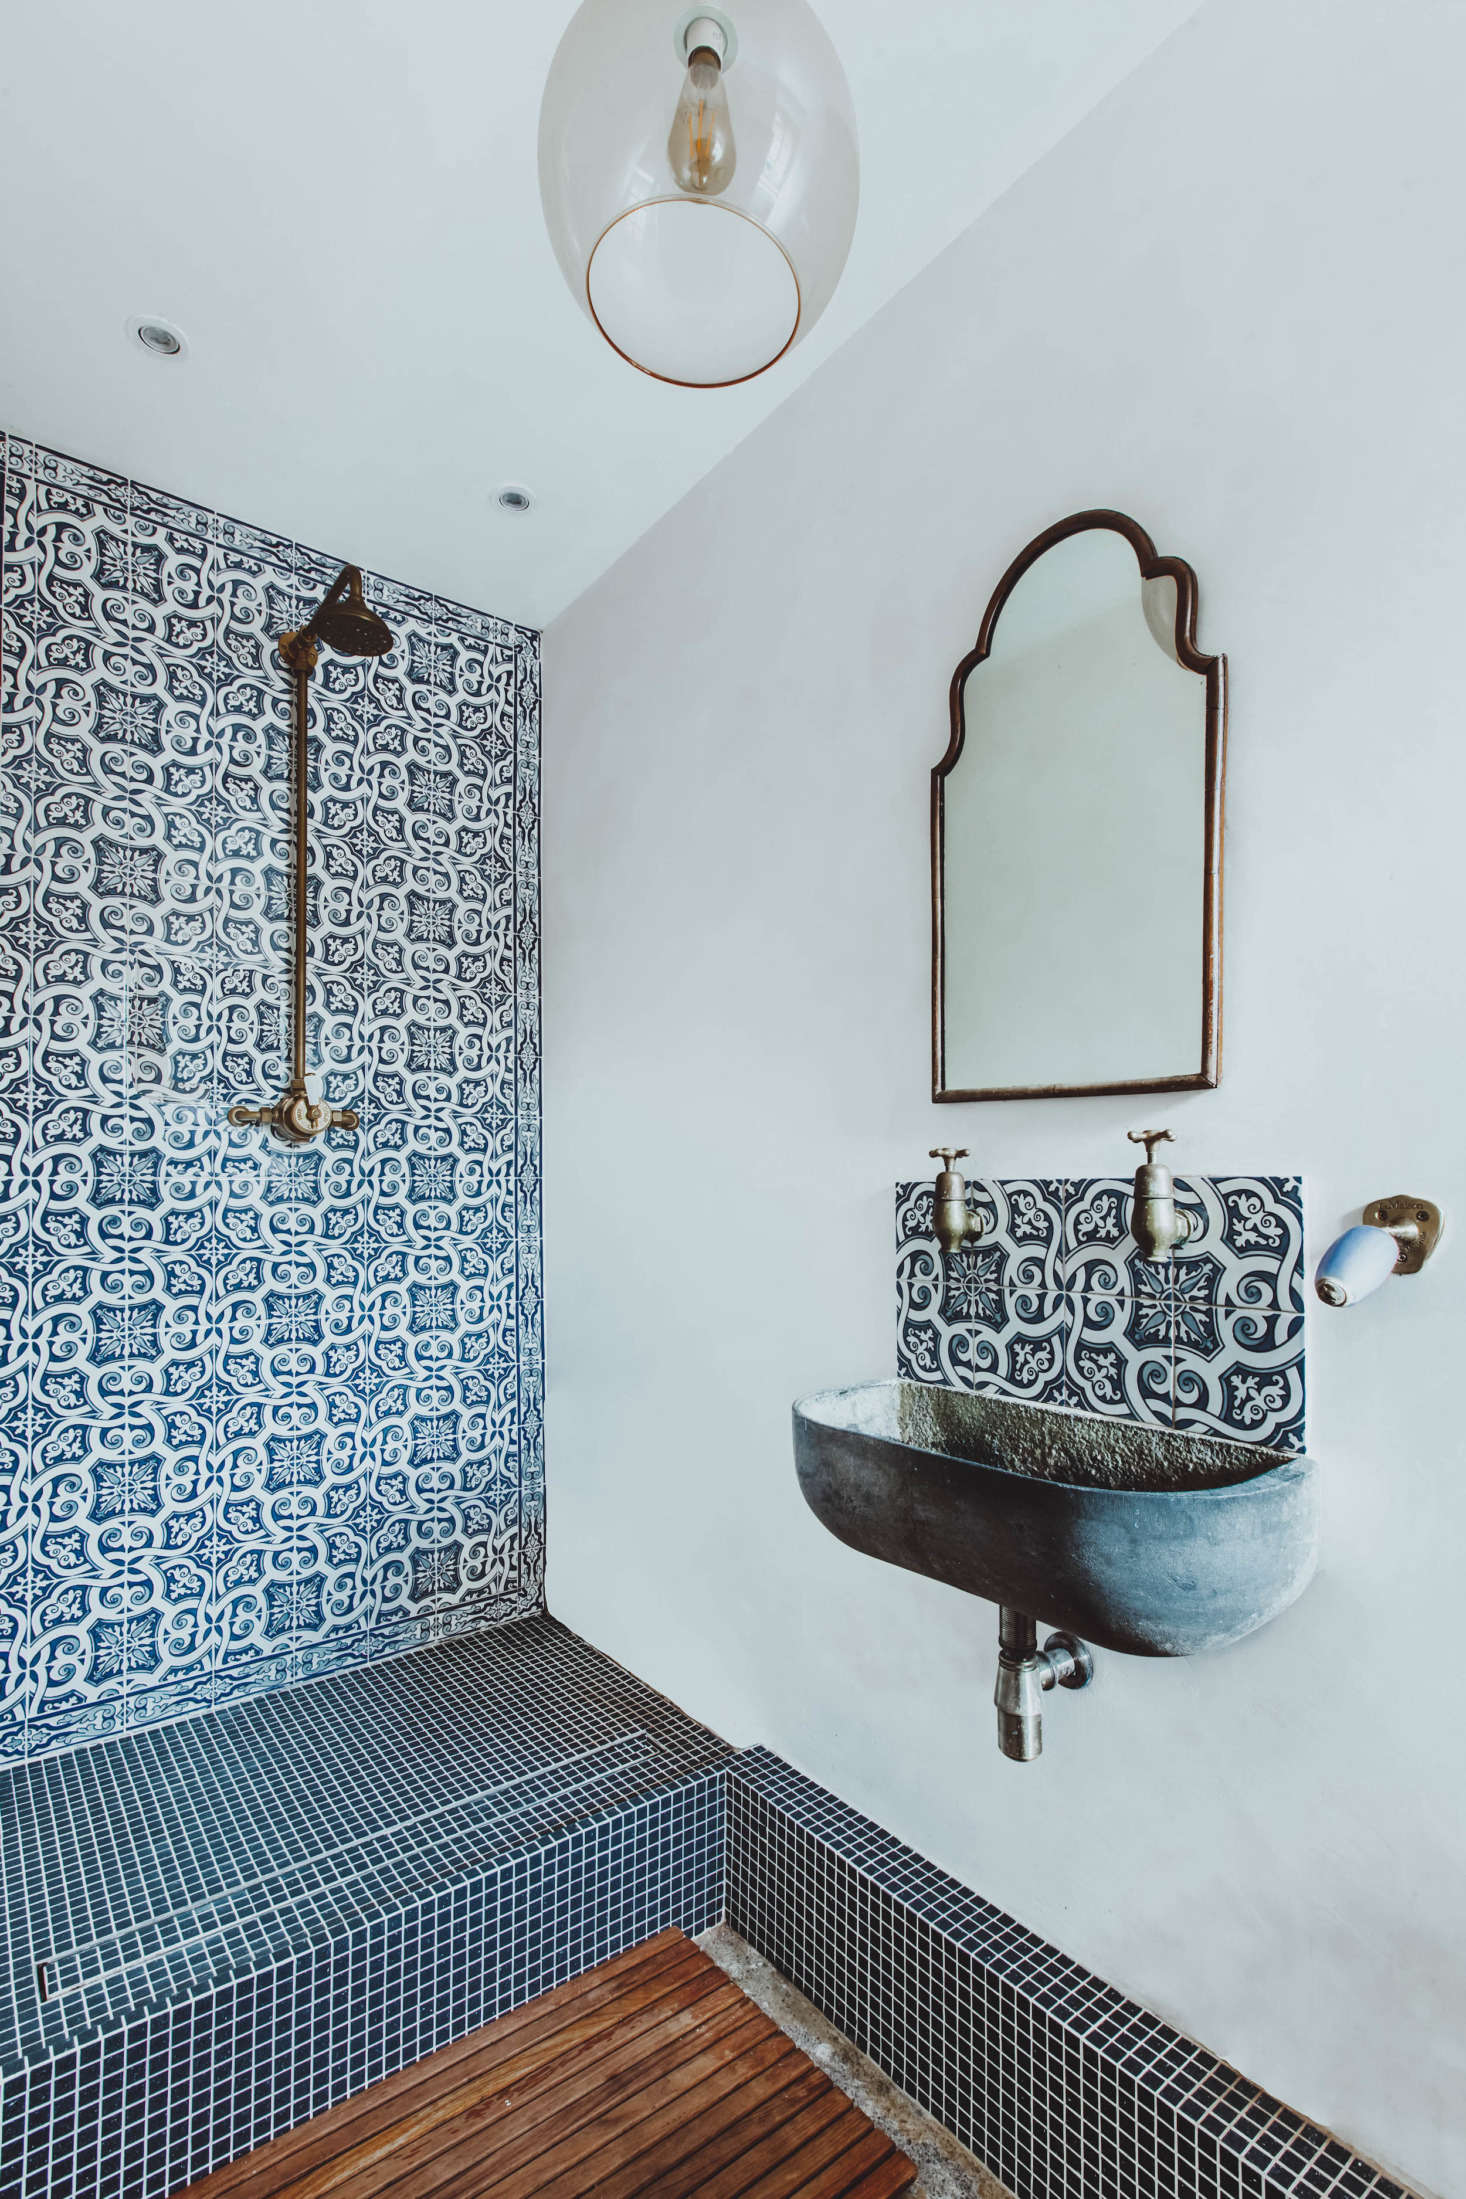 In one bath, the shower is tiled with Portuguese azulejo tiles. &#8